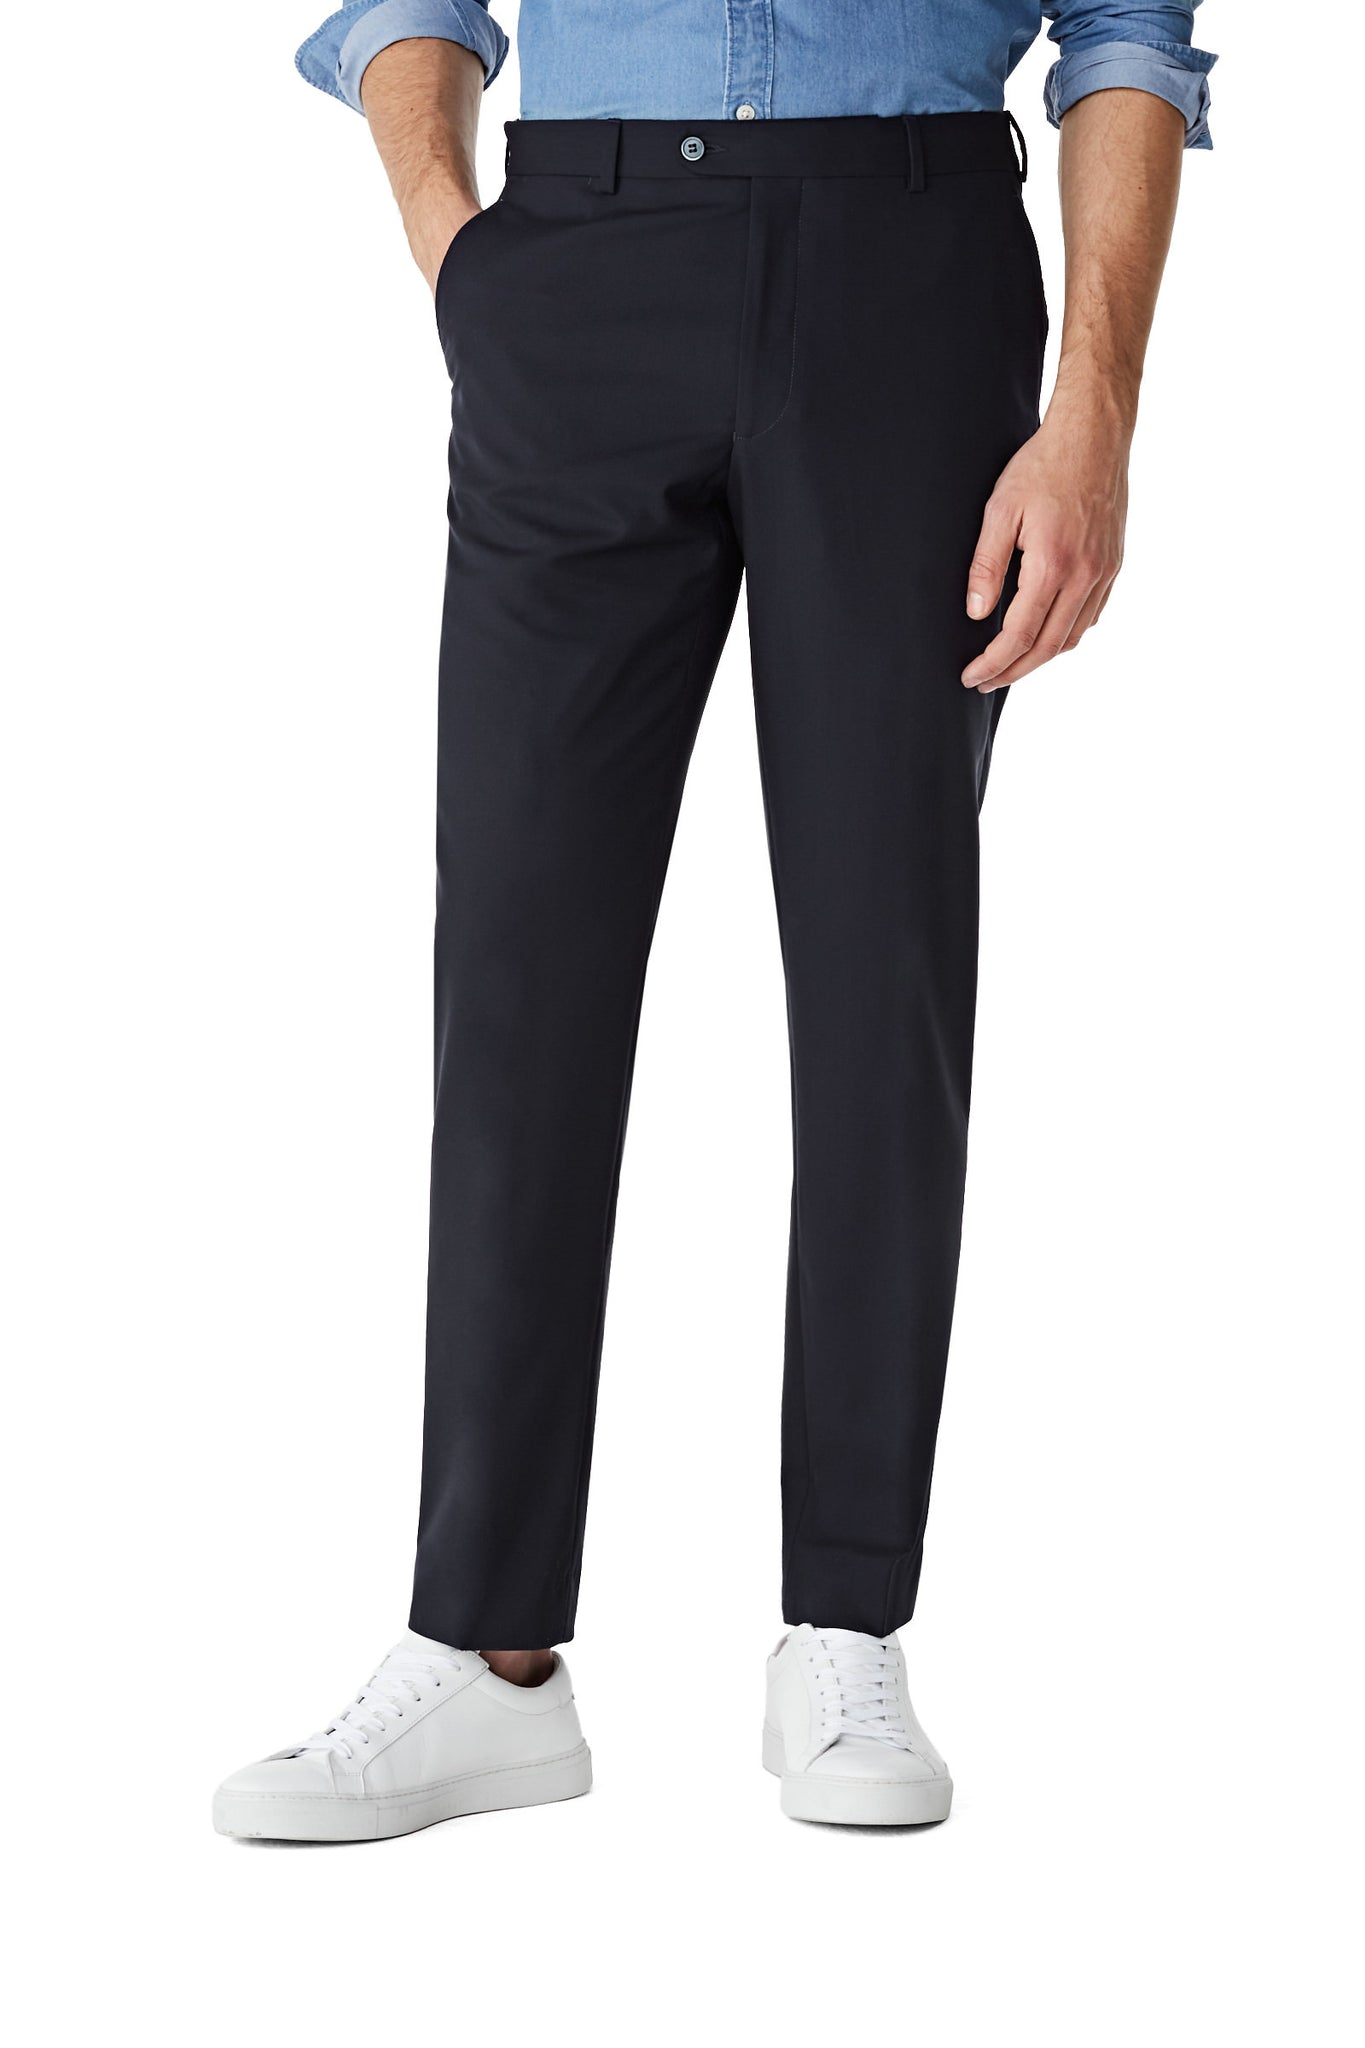 McG Tailored fit trousers of wool